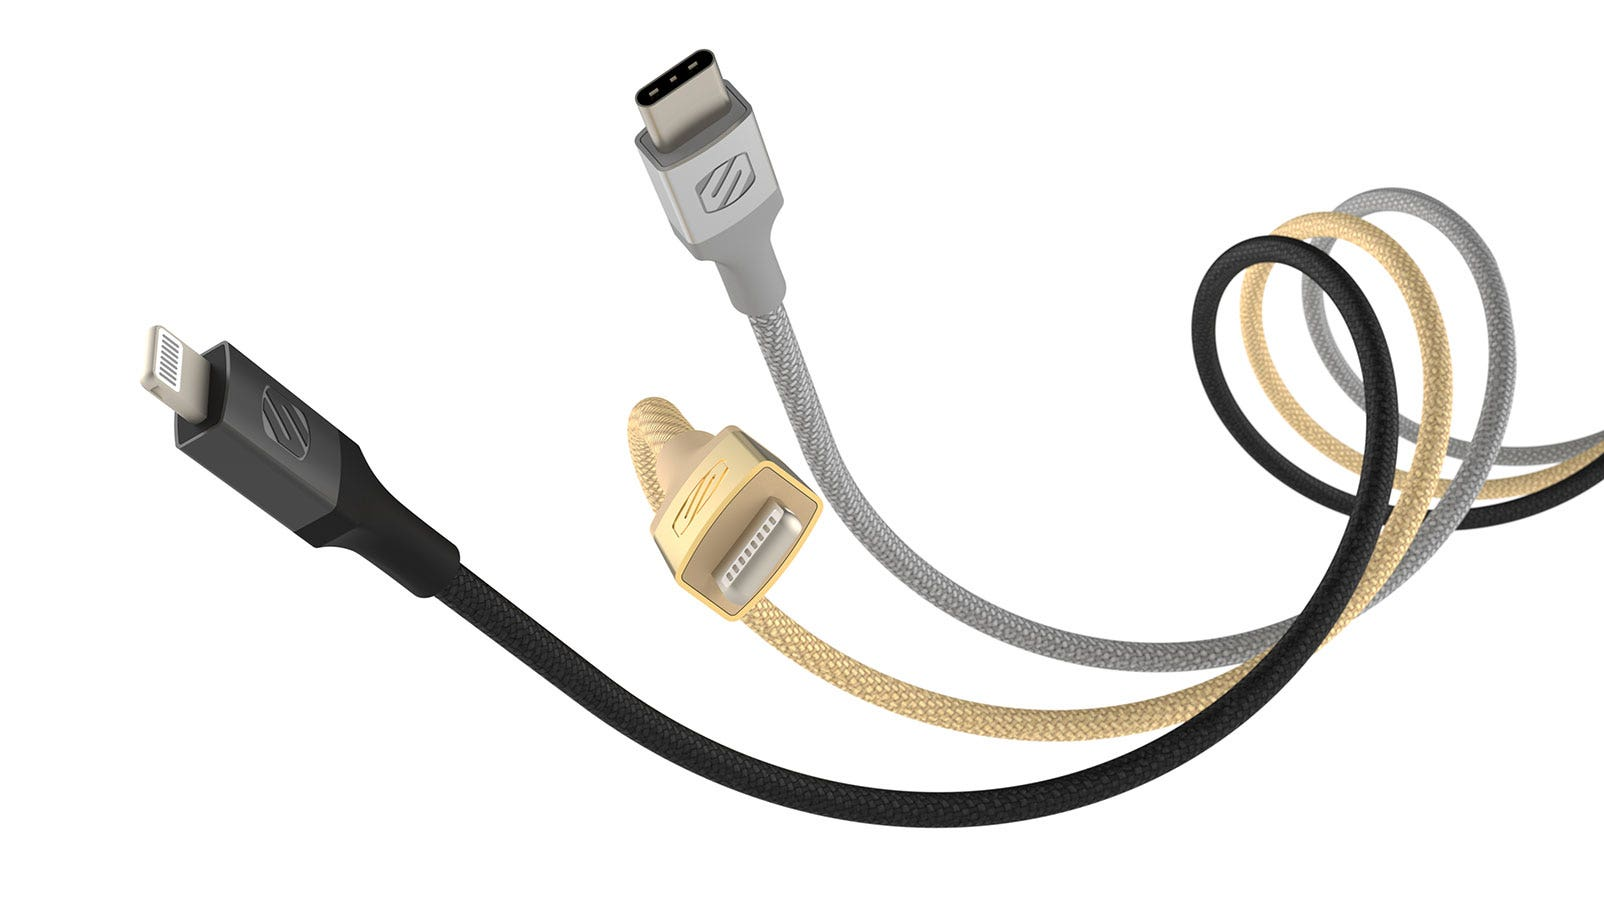 USBc to Lightning cable connecting an iPhone to a MacBook